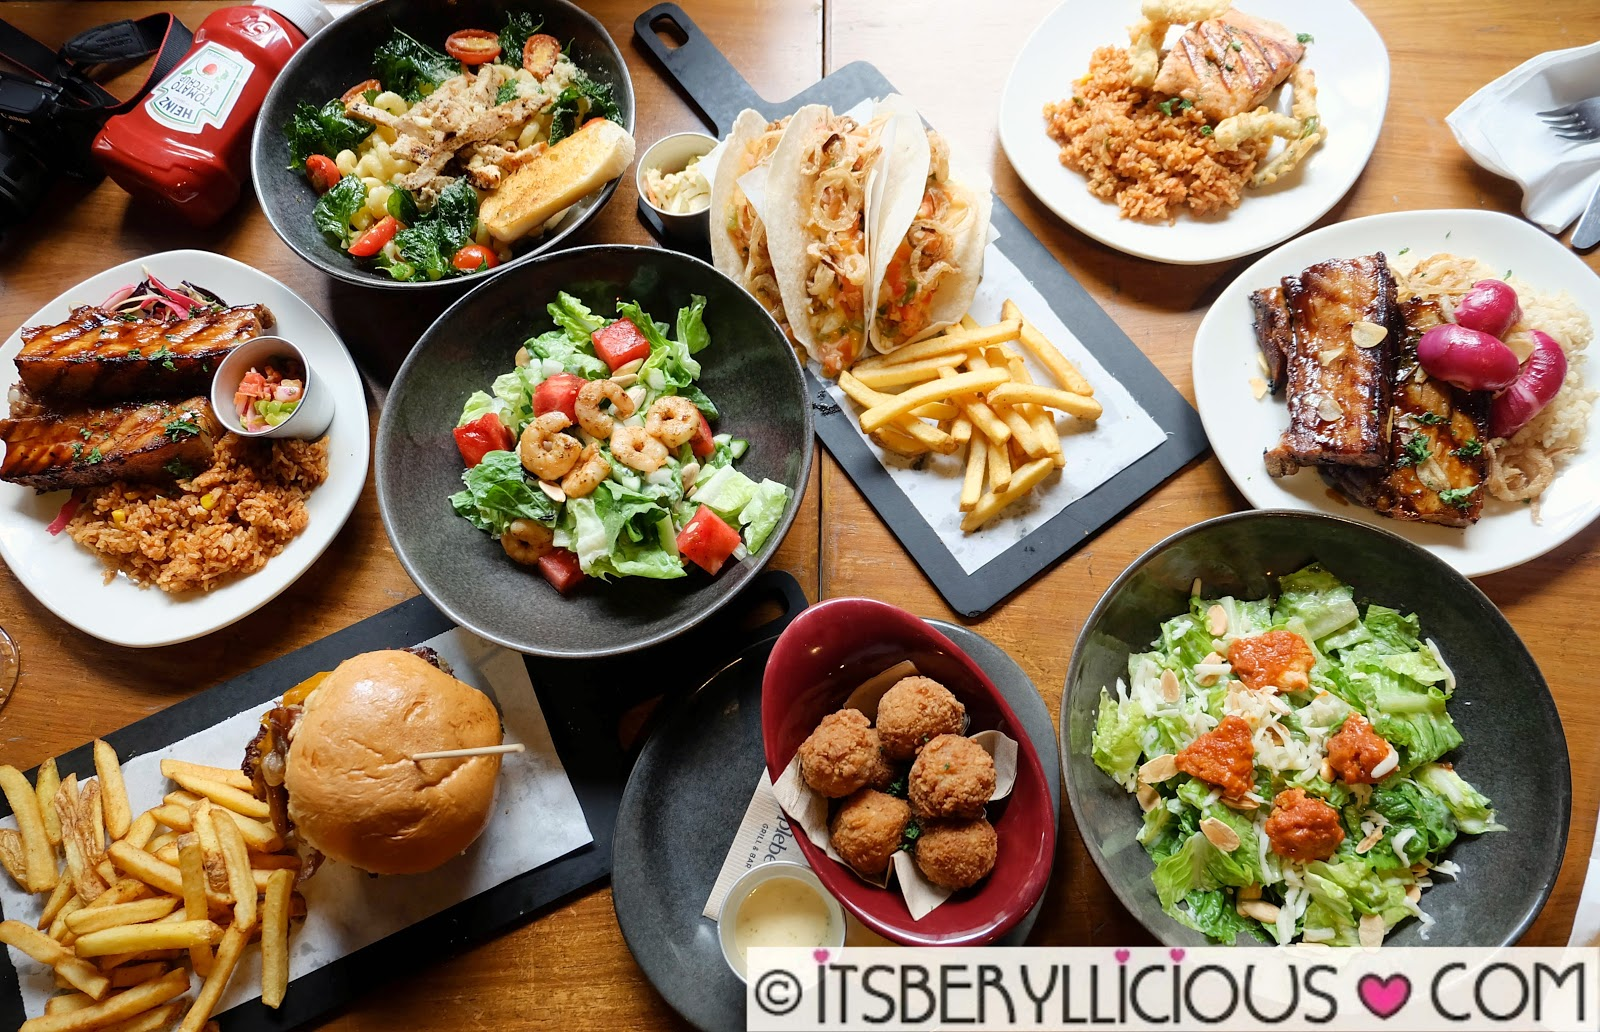 applebees's grill & bar launches new dishes to give more reasons to